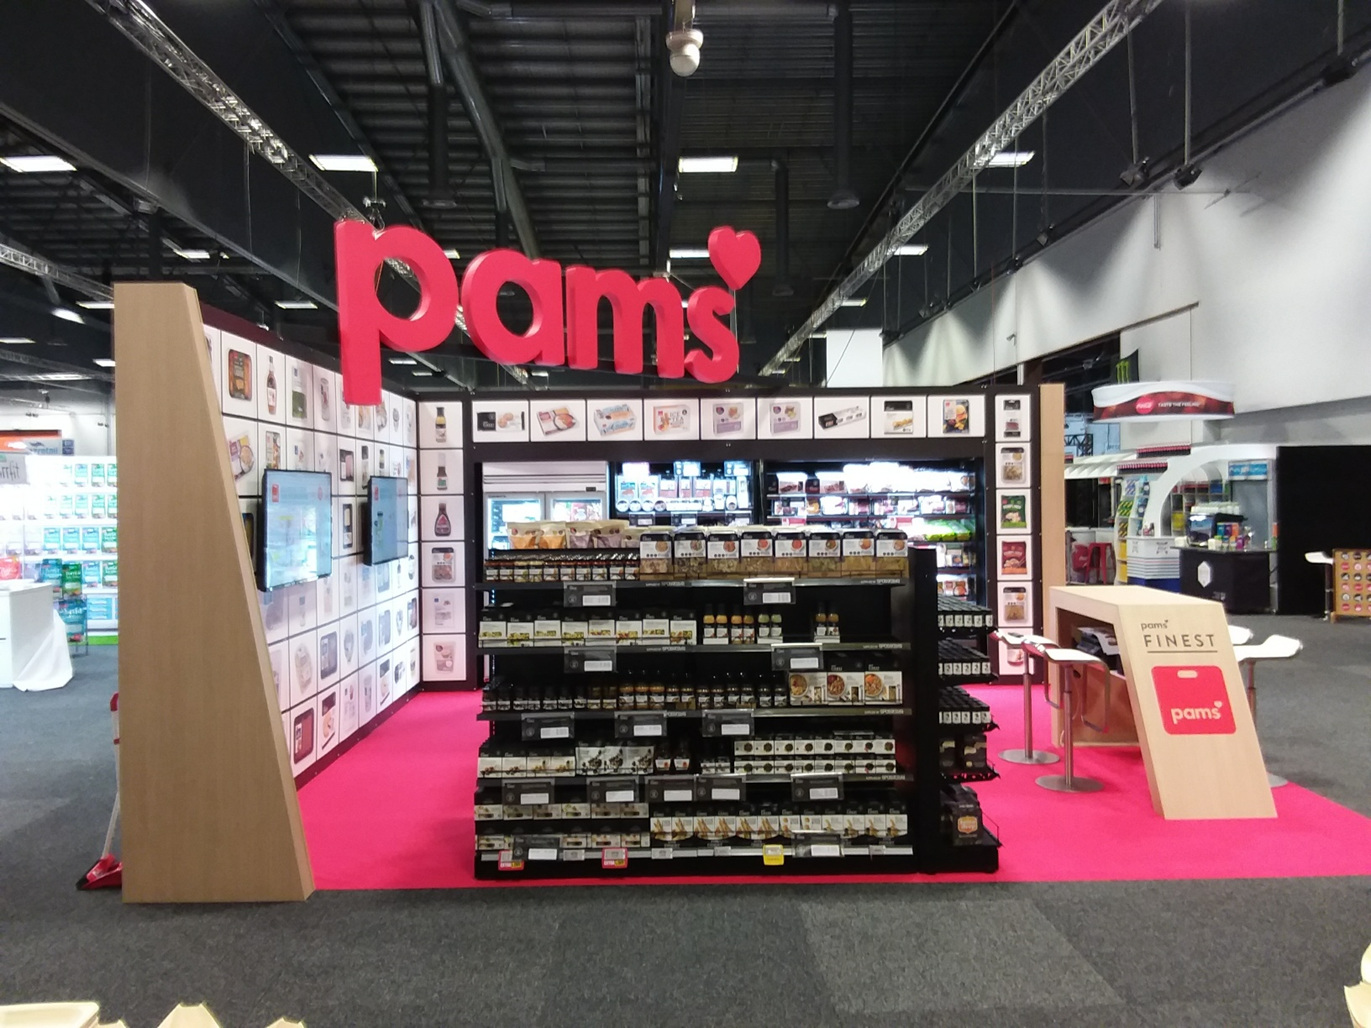 Foodstuffs Expo Stand 2018 - Designed and Built by Shout Group for the past 15 years